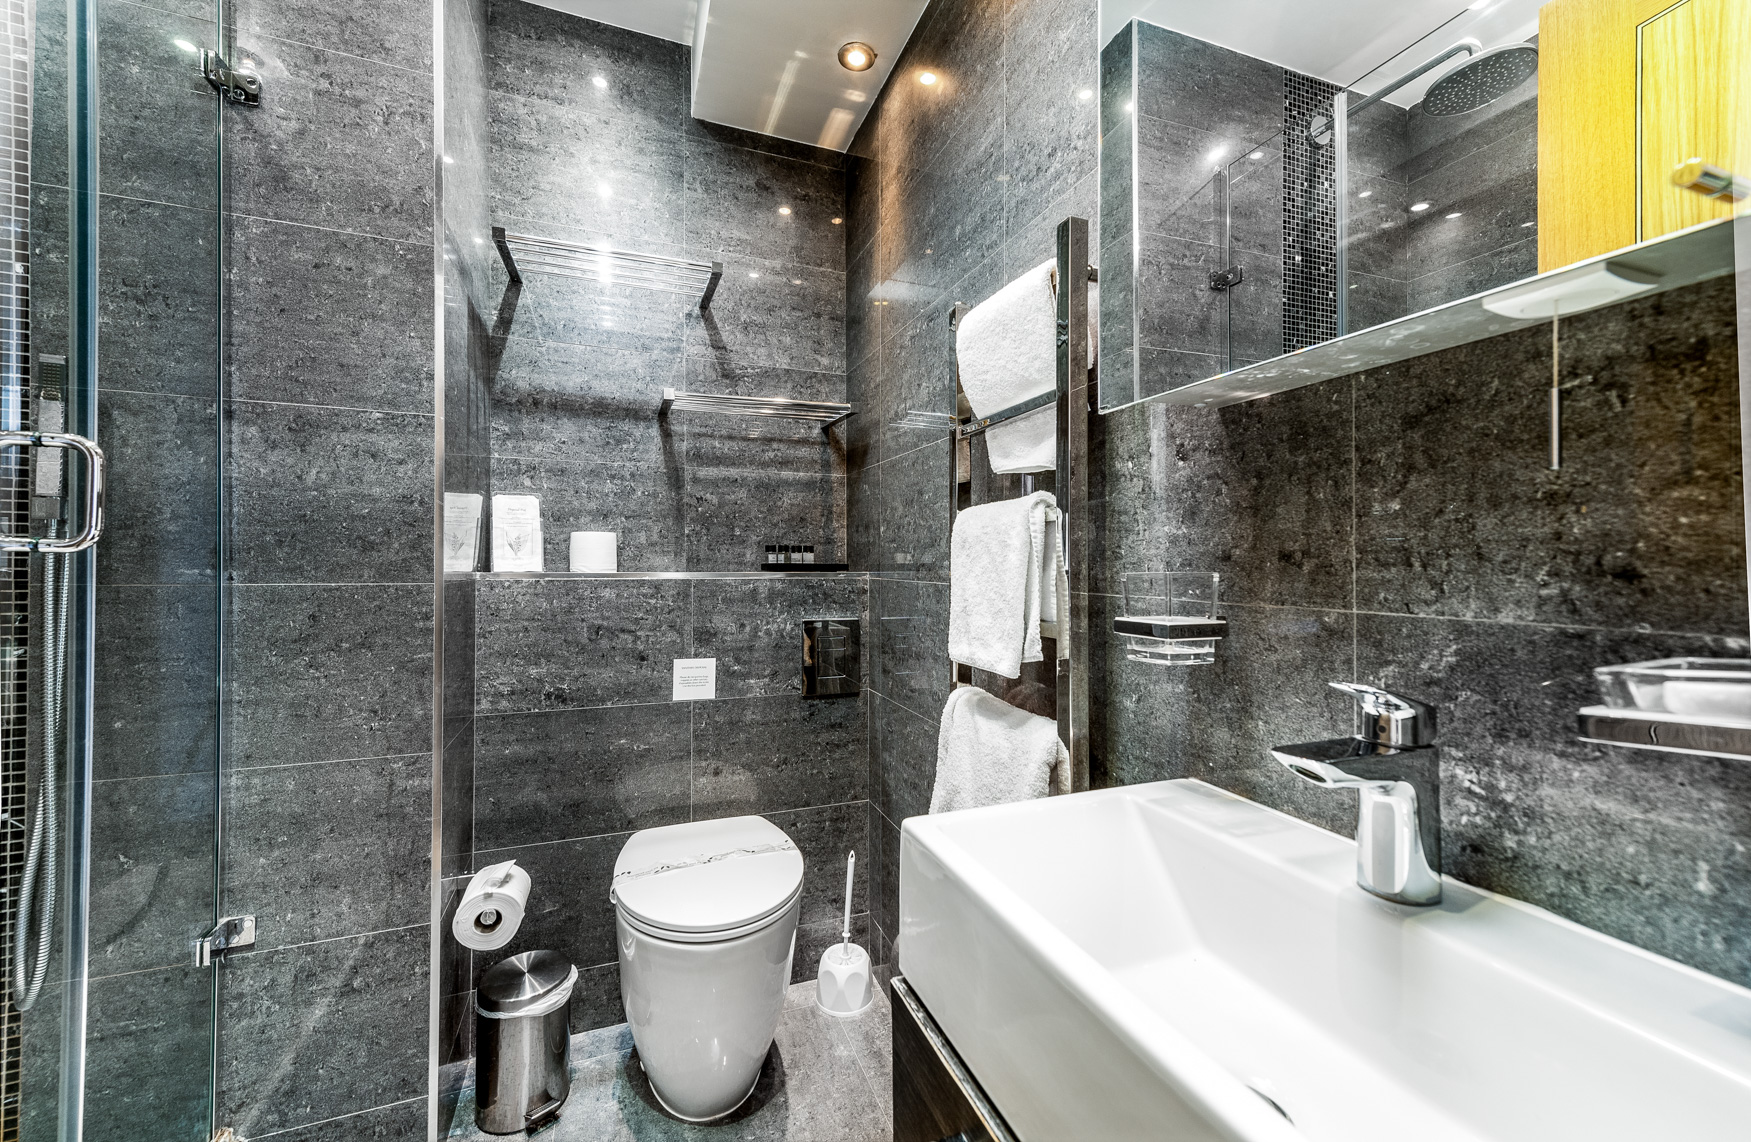 Bathroom at Nell Gwynn House Accommodation, Chelsea, London - Citybase Apartments